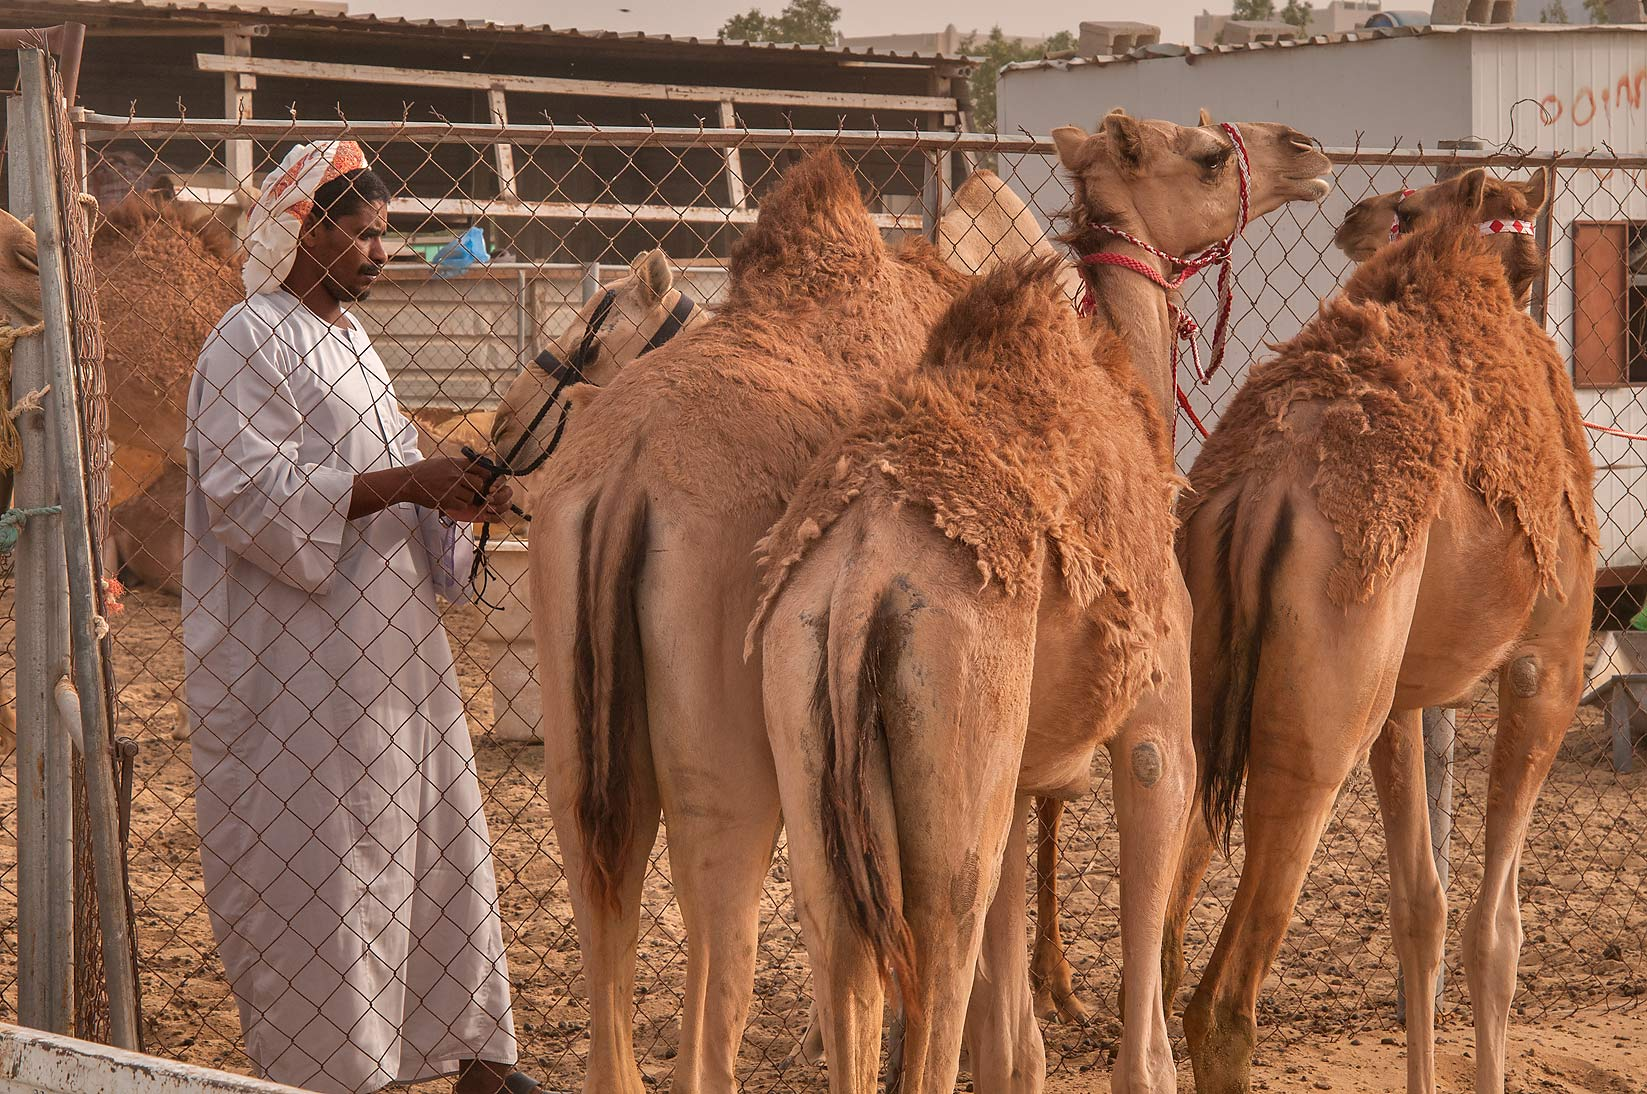 Molting camels in Livestock Market, Abu Hamour area. Doha, Qatar